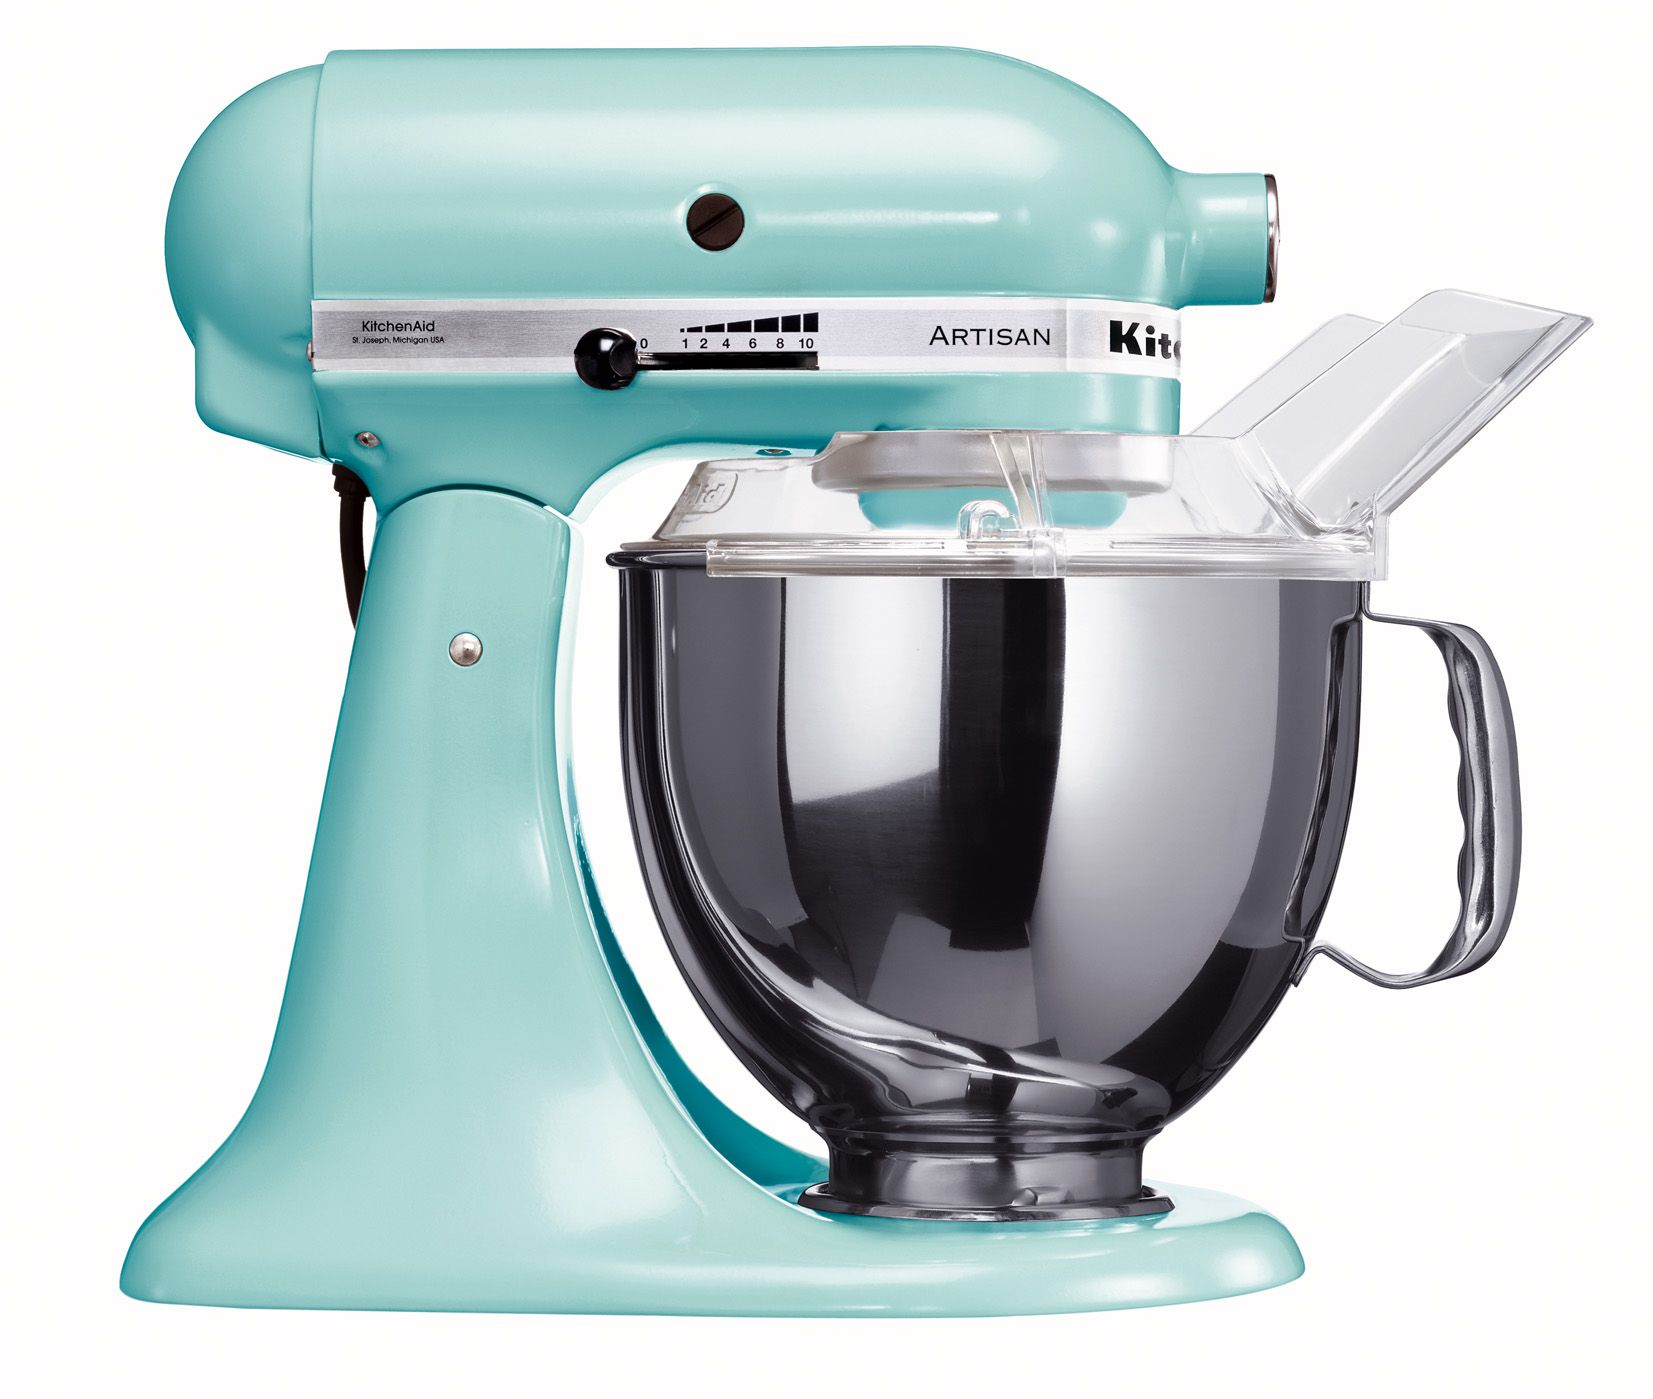 Nothing but good blues here at KitchenAid Africa Headquarters today ...